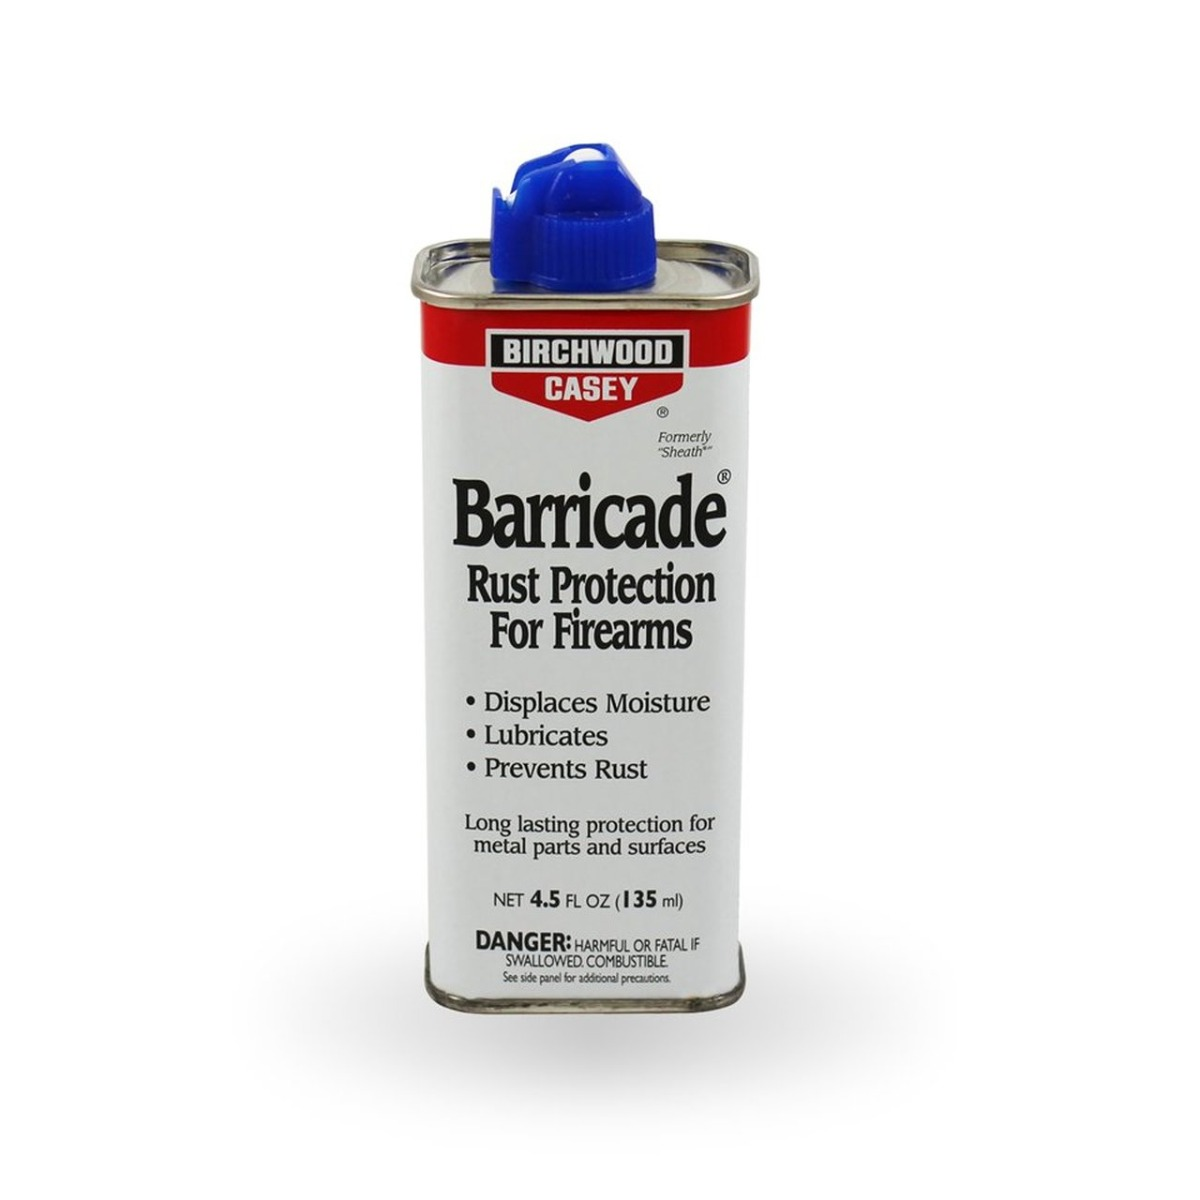 Birchwood Casey Barricade Rust Protection 4.5 Fl Oz Spout Can